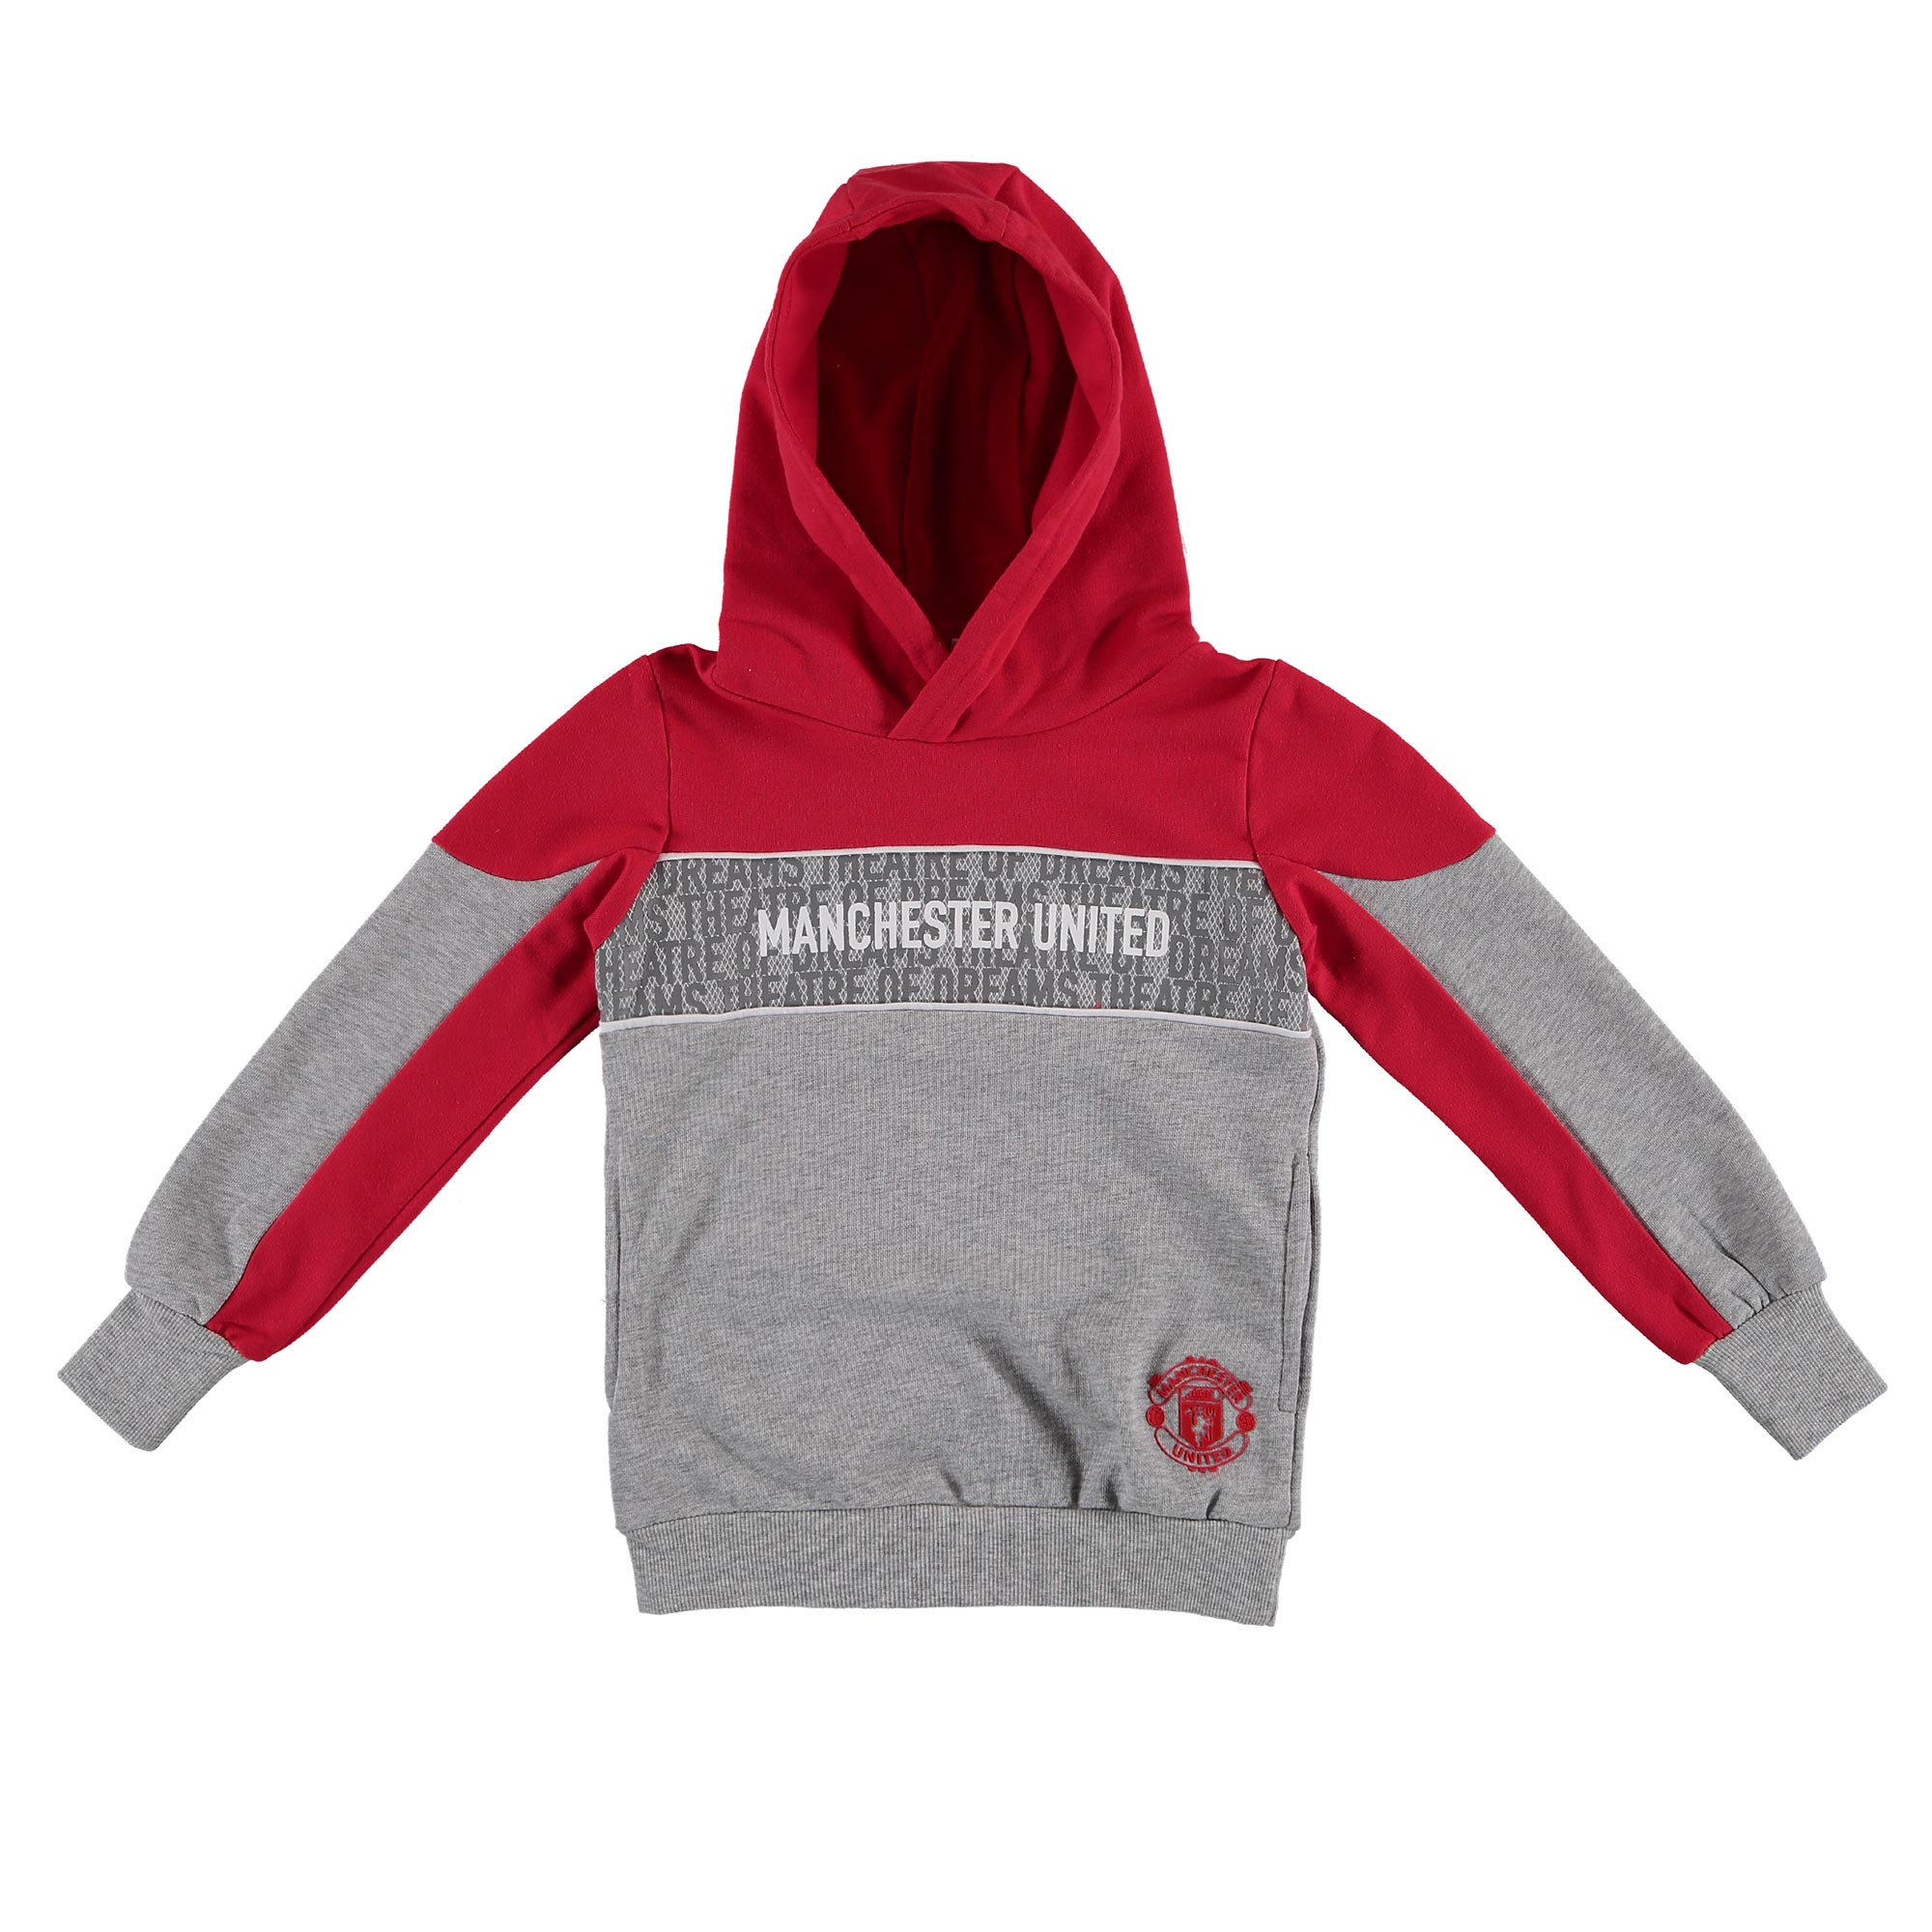 Manchester United Hoodie - Grey/Red - Girls